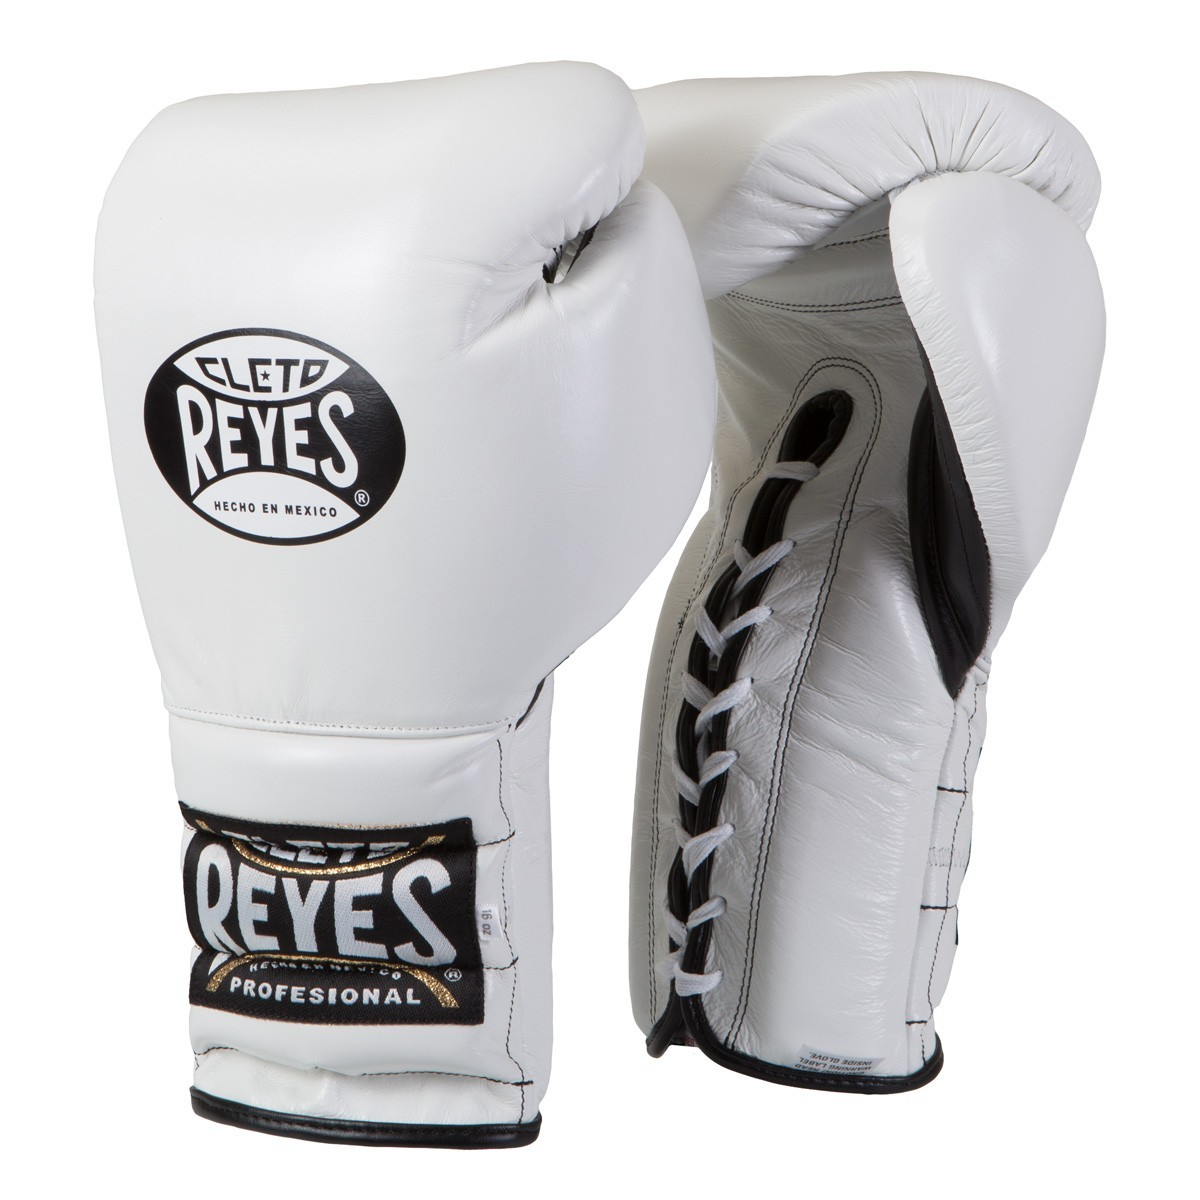 Cleto Reyes Traditional laced training gloves